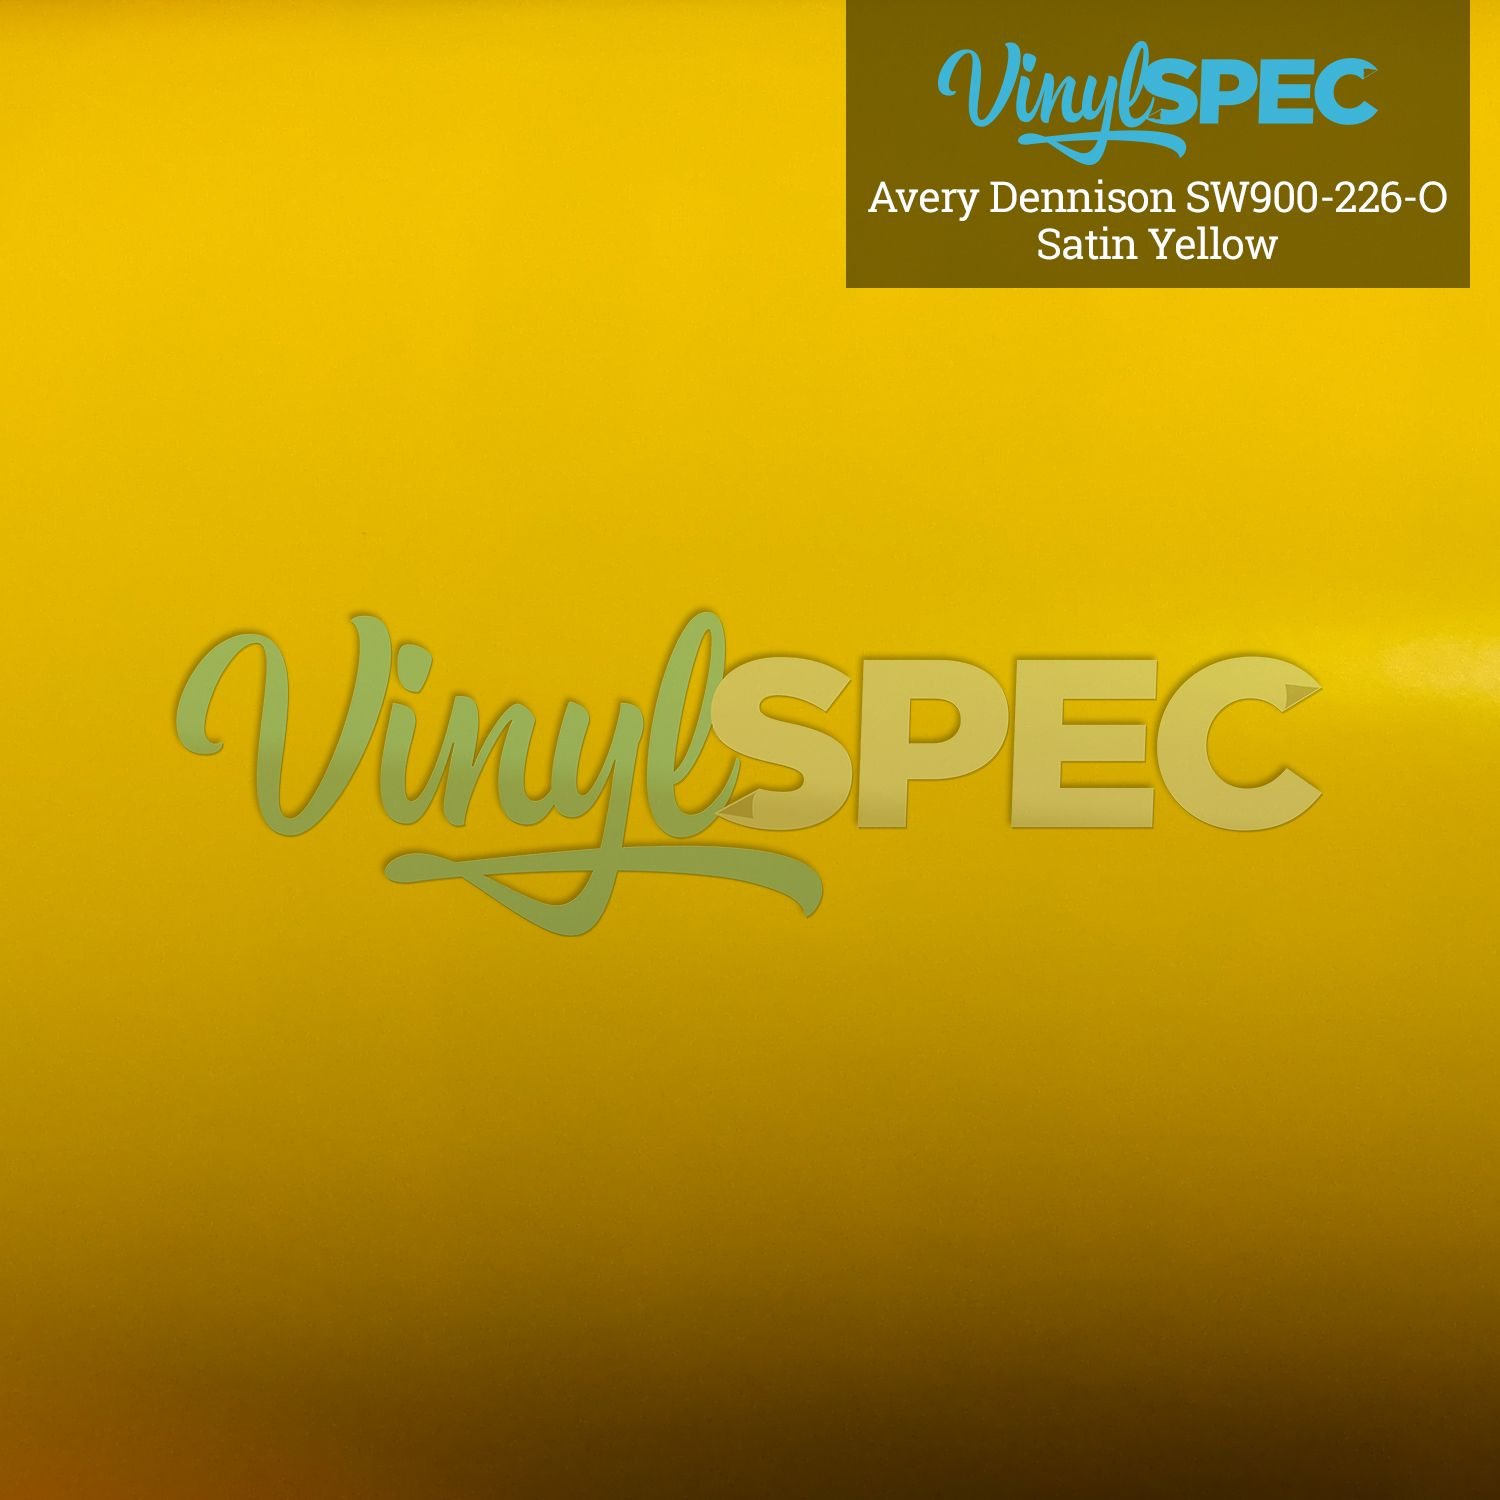 Avery Dennison Satin Yellow SW900-190-O Vinyl Spec- Distributor of Vinyl Car Wrap Film, tools, and aftercare products